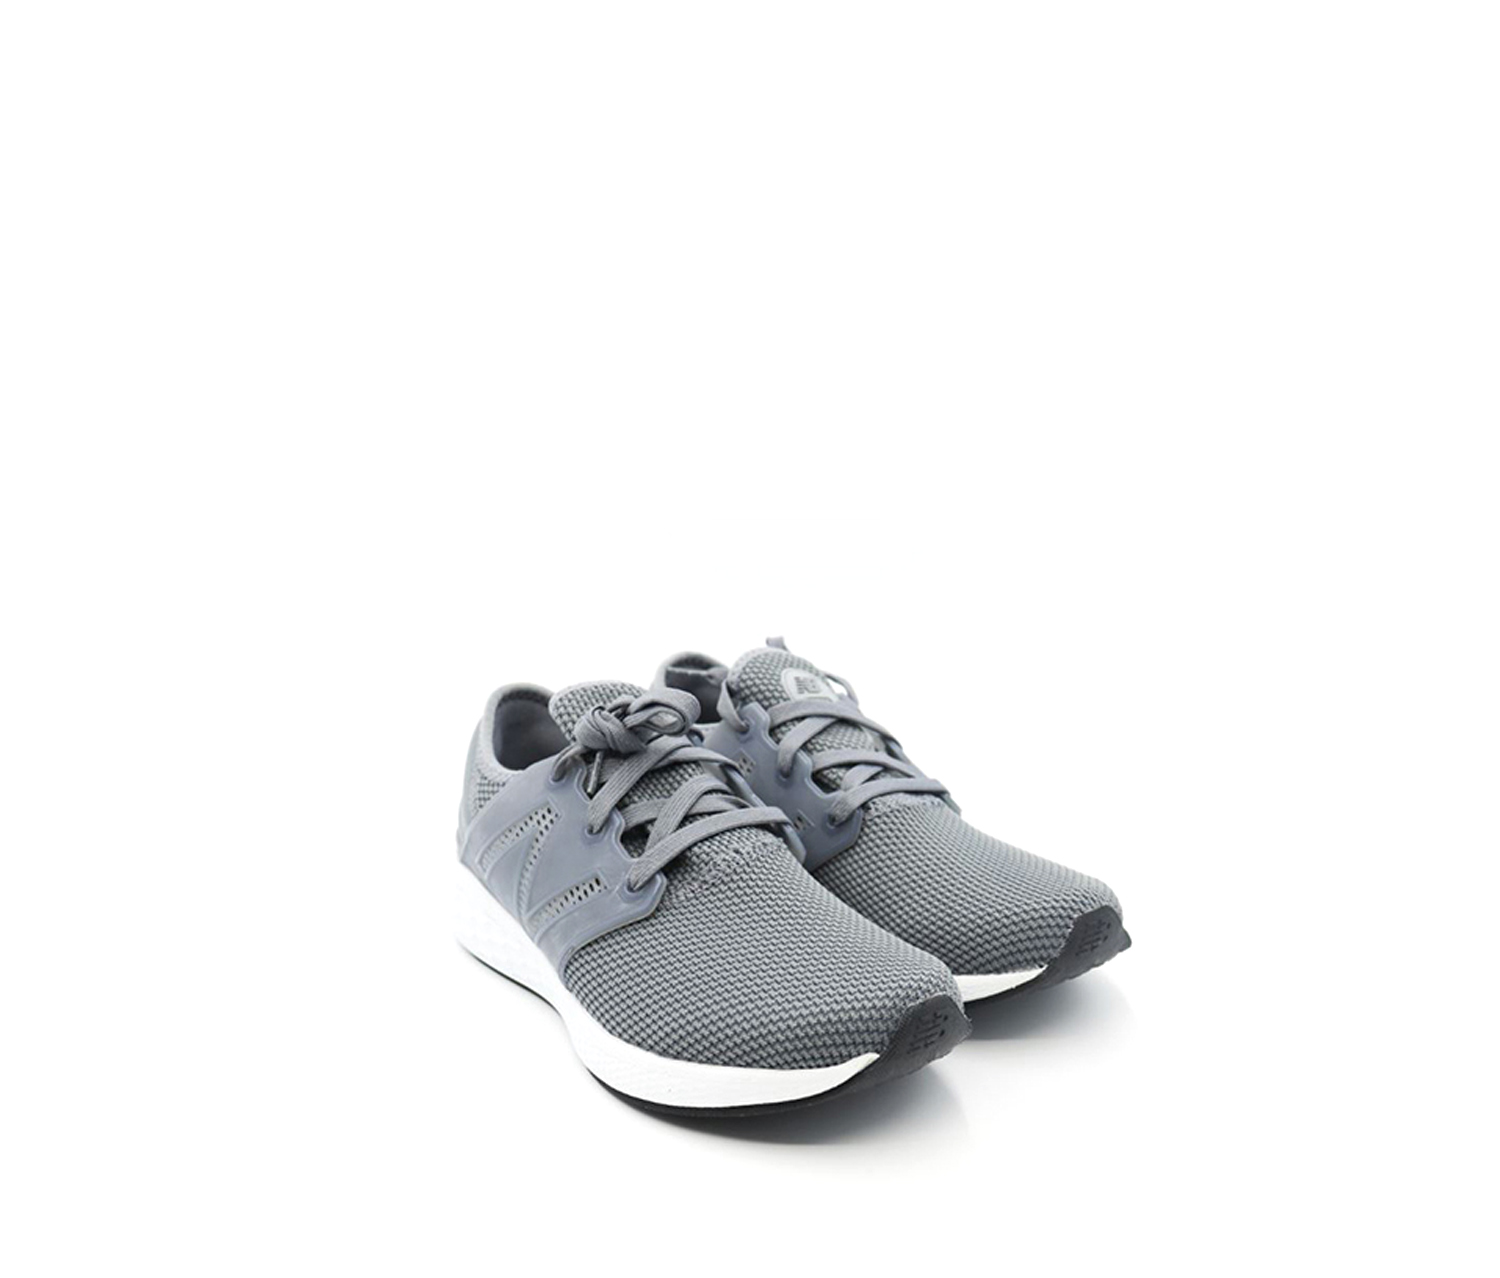 Men's Sport's Shoes, Grey